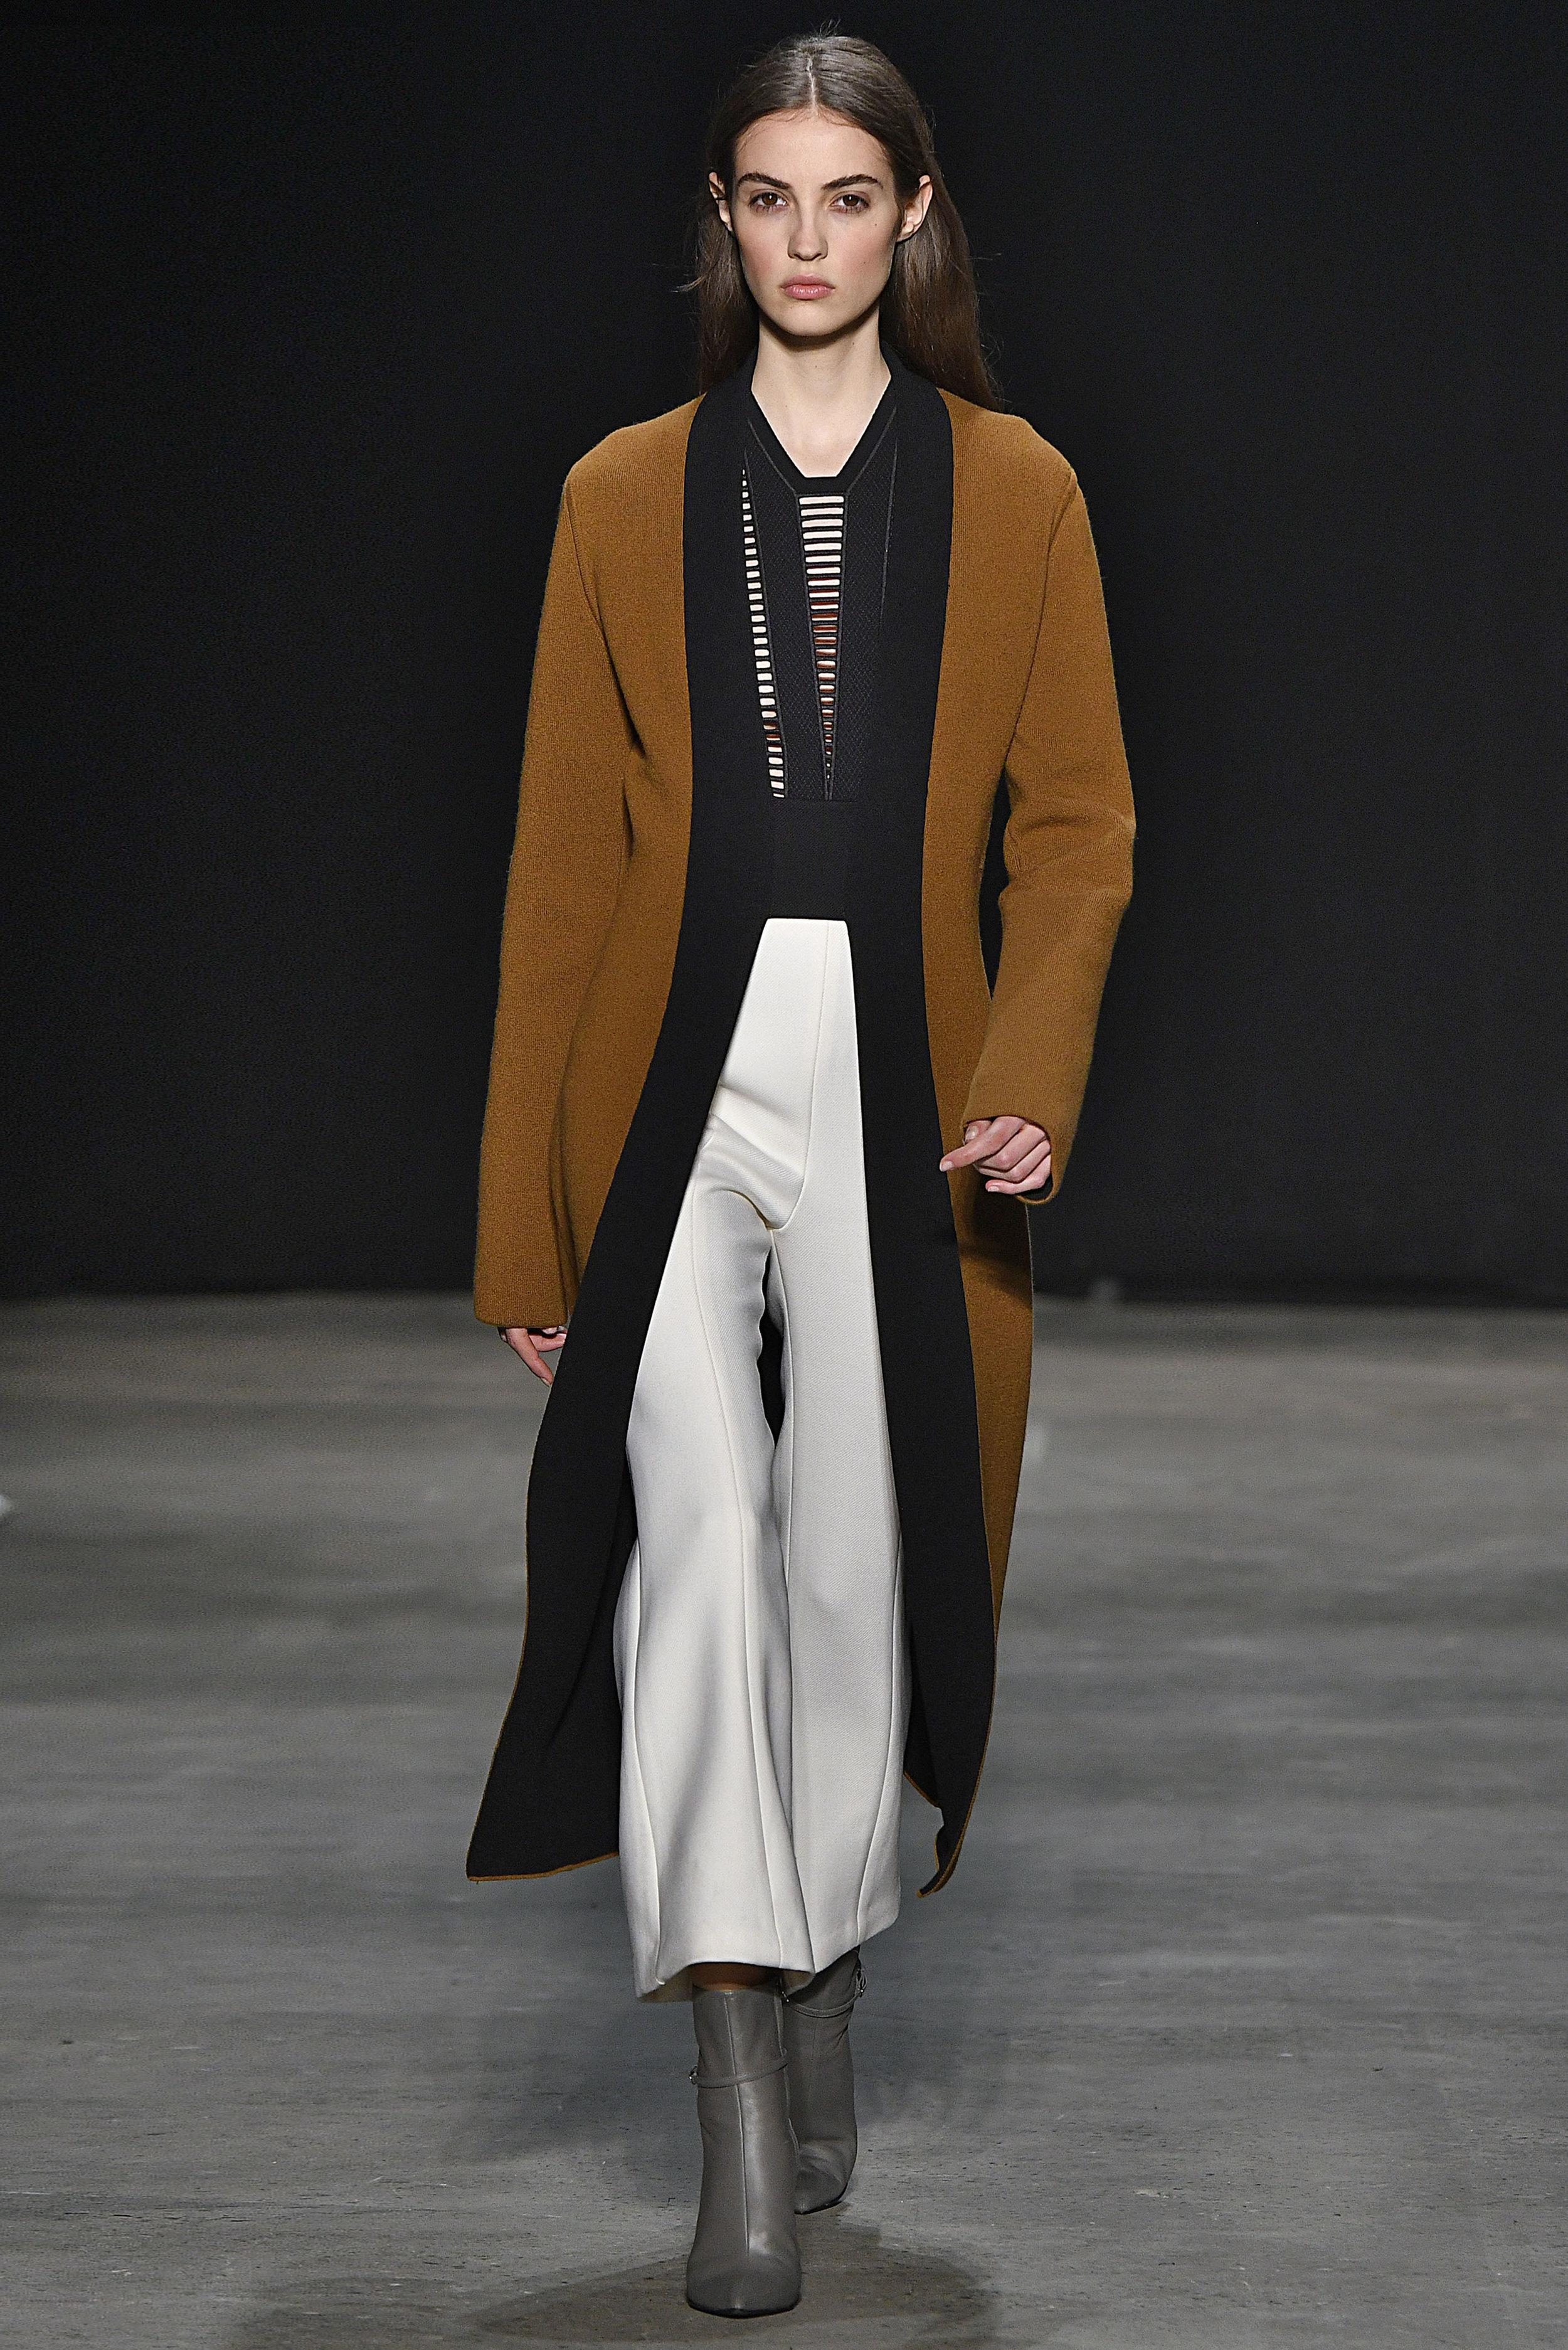 Narciso Rodriguez Fall 2017 collection. Copper cashmere/black double knit coat over black embroidered top with ivory wool twill pant.